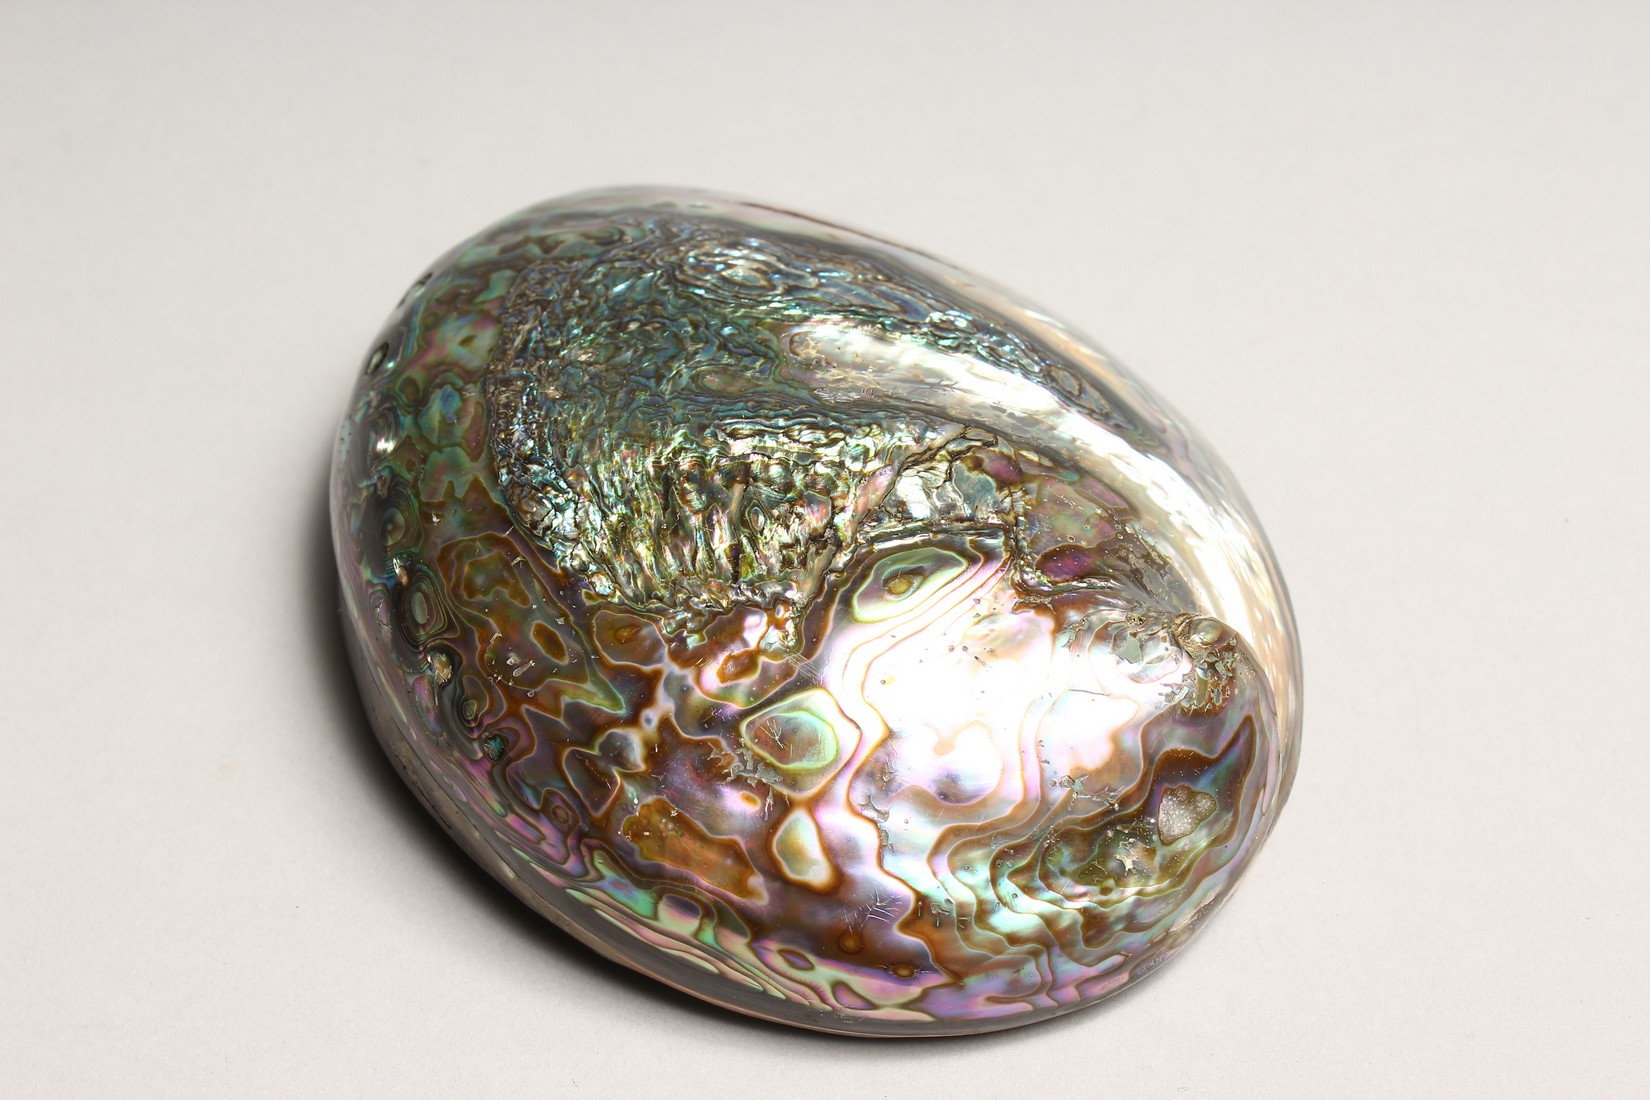 A MOTHER OF PEARL OPEN SHELL 7ins long - Image 3 of 4